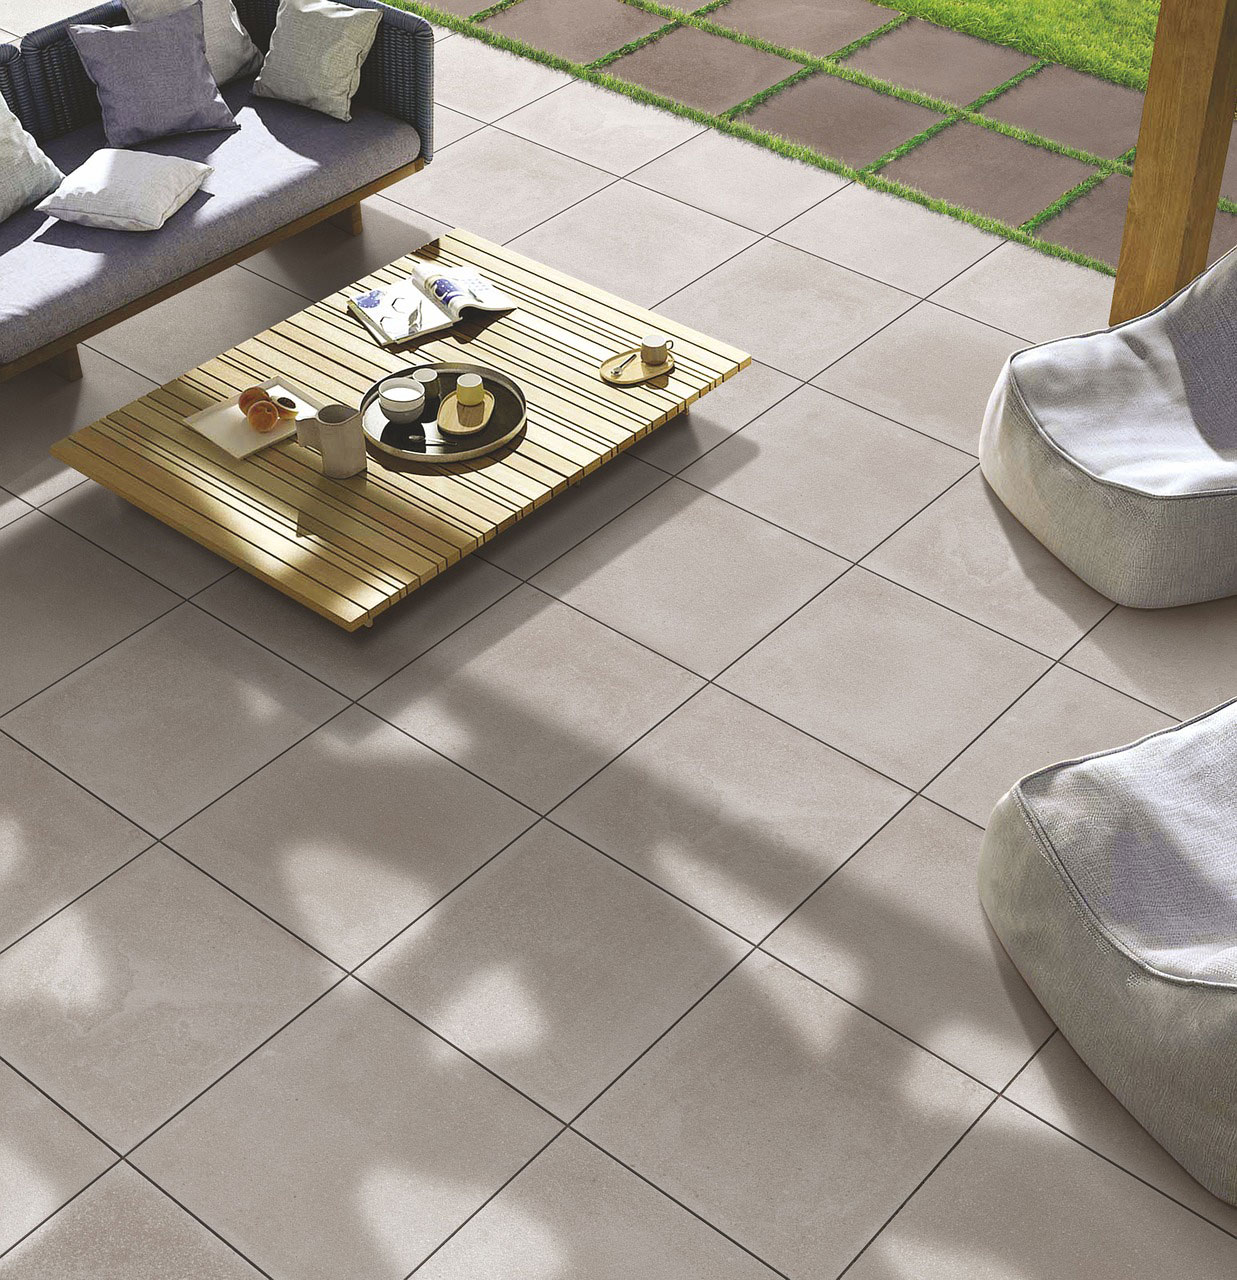 Square patio tiles